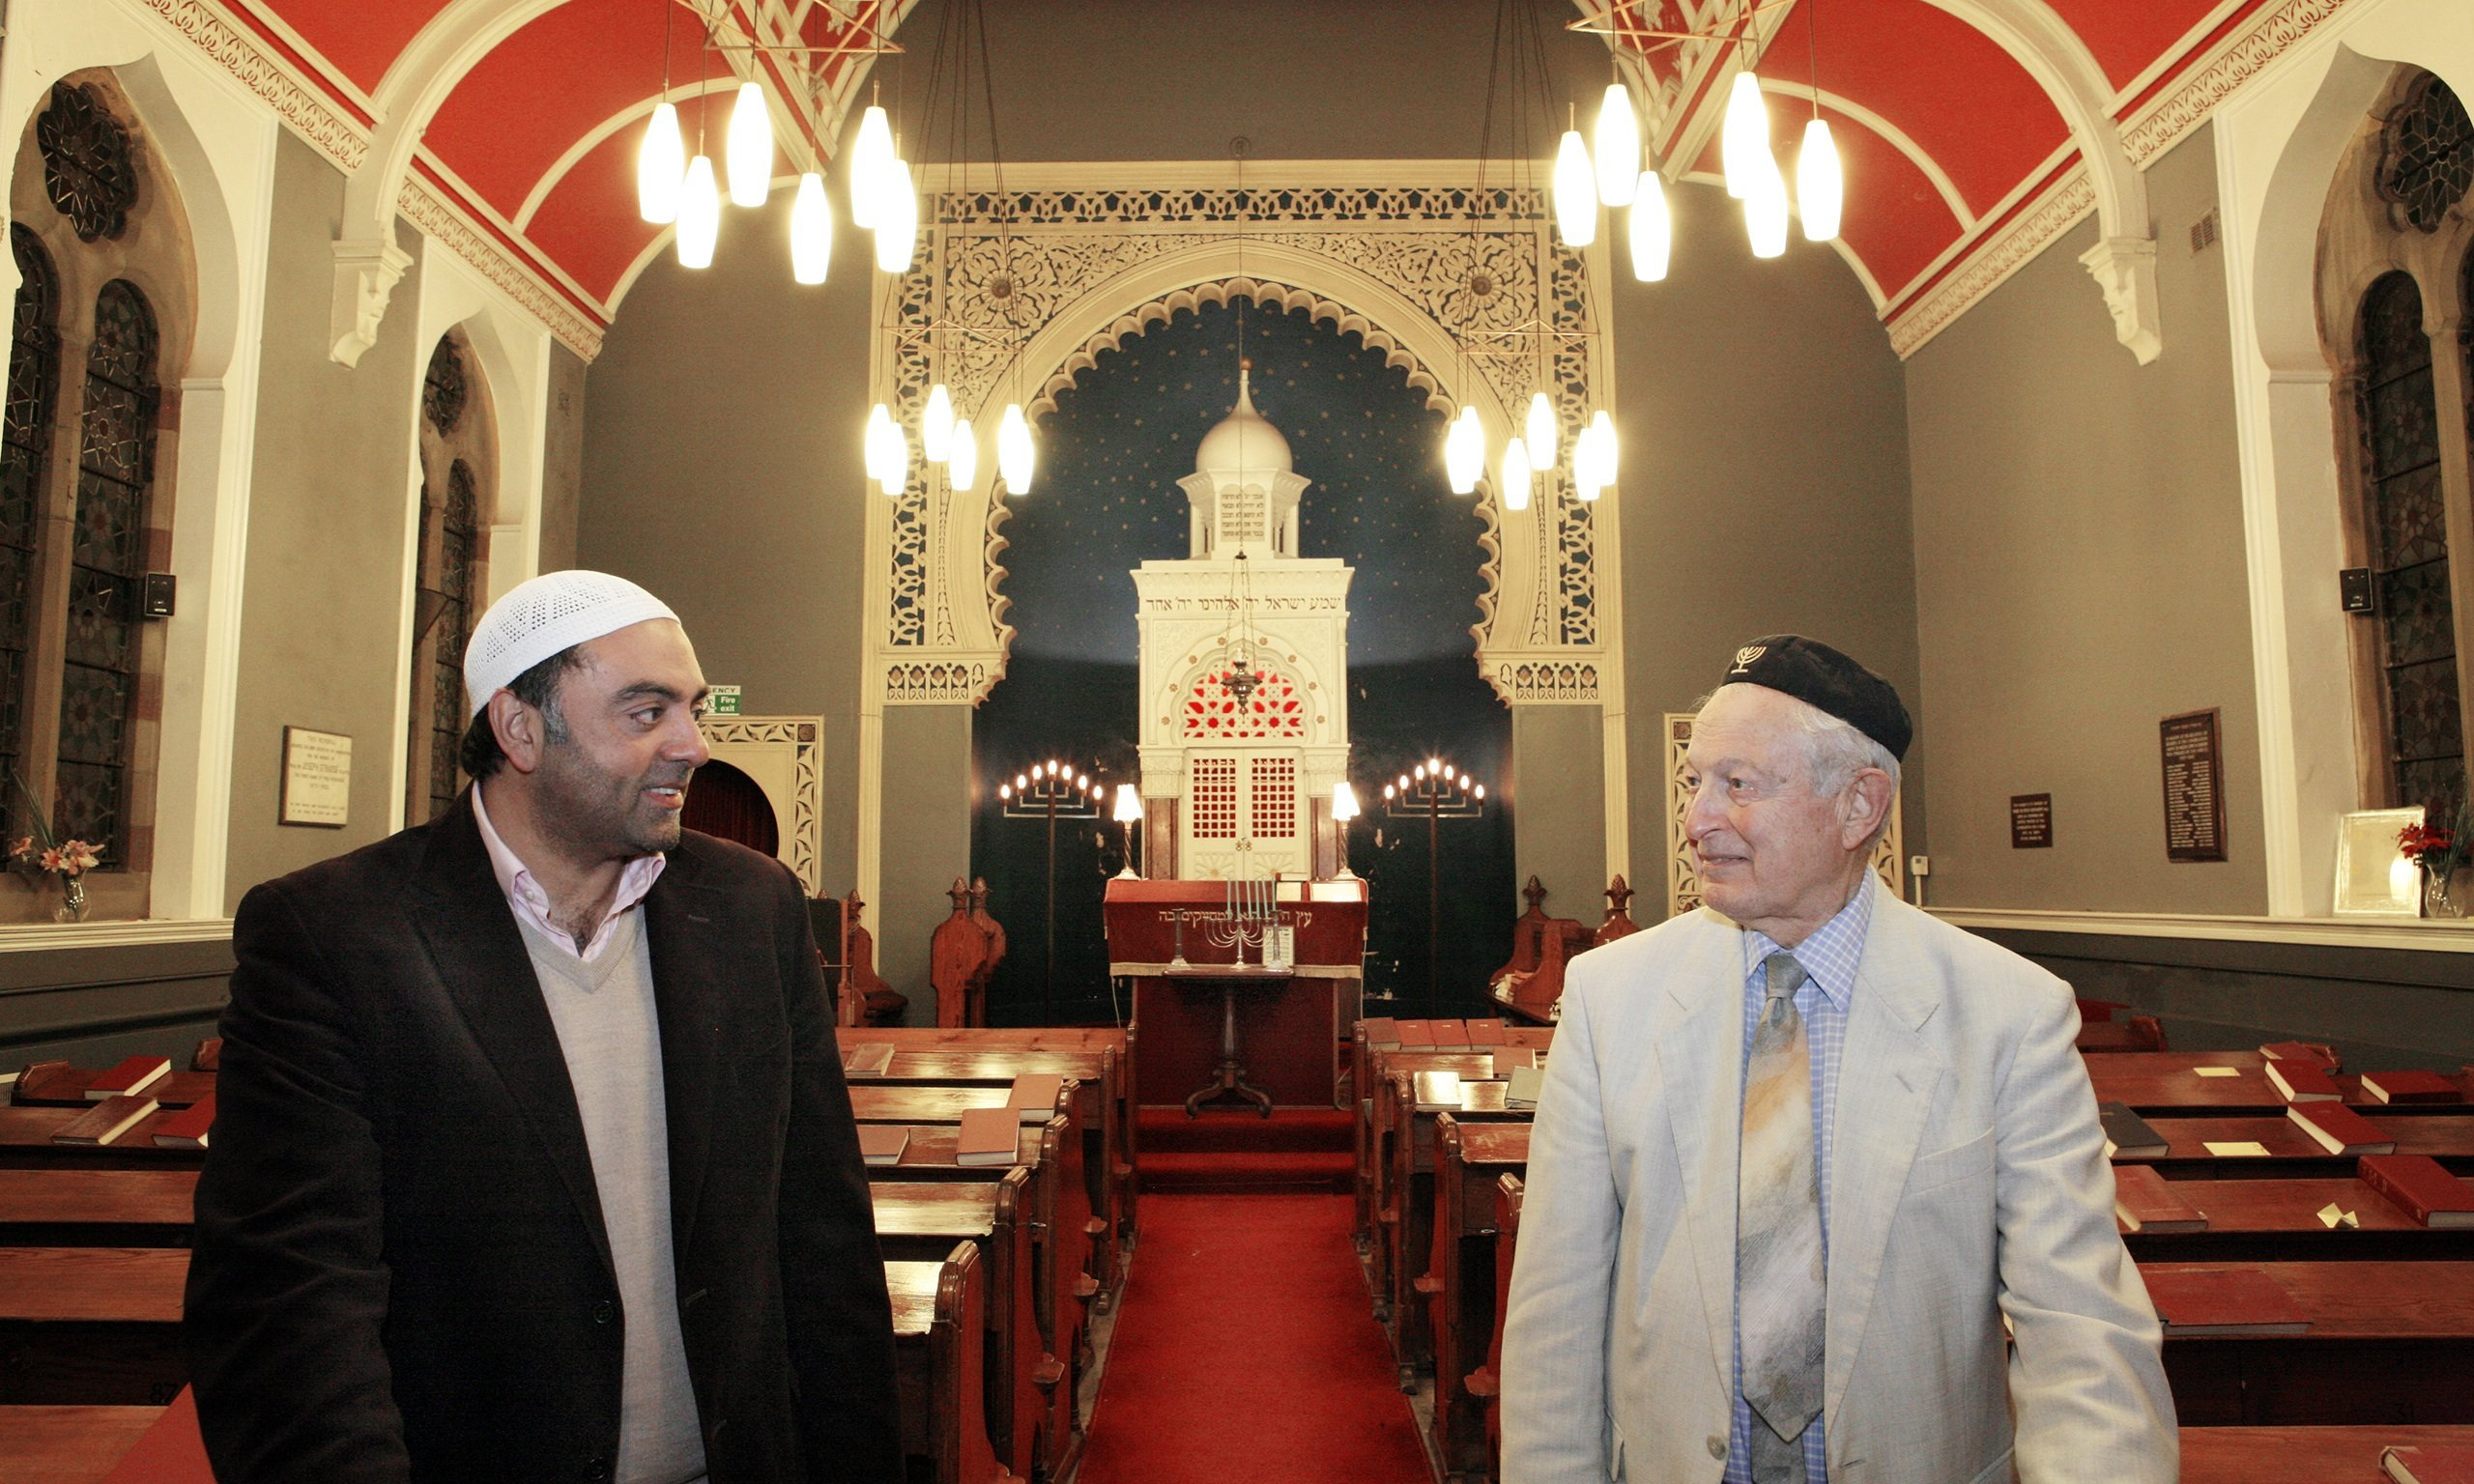 Bradford Reform Synagogue. Zulfi Karim, secretary of Bradford Council of Mosques, and Rudi Leavor, chairman of the synagogue. Photo: Gary Calton.